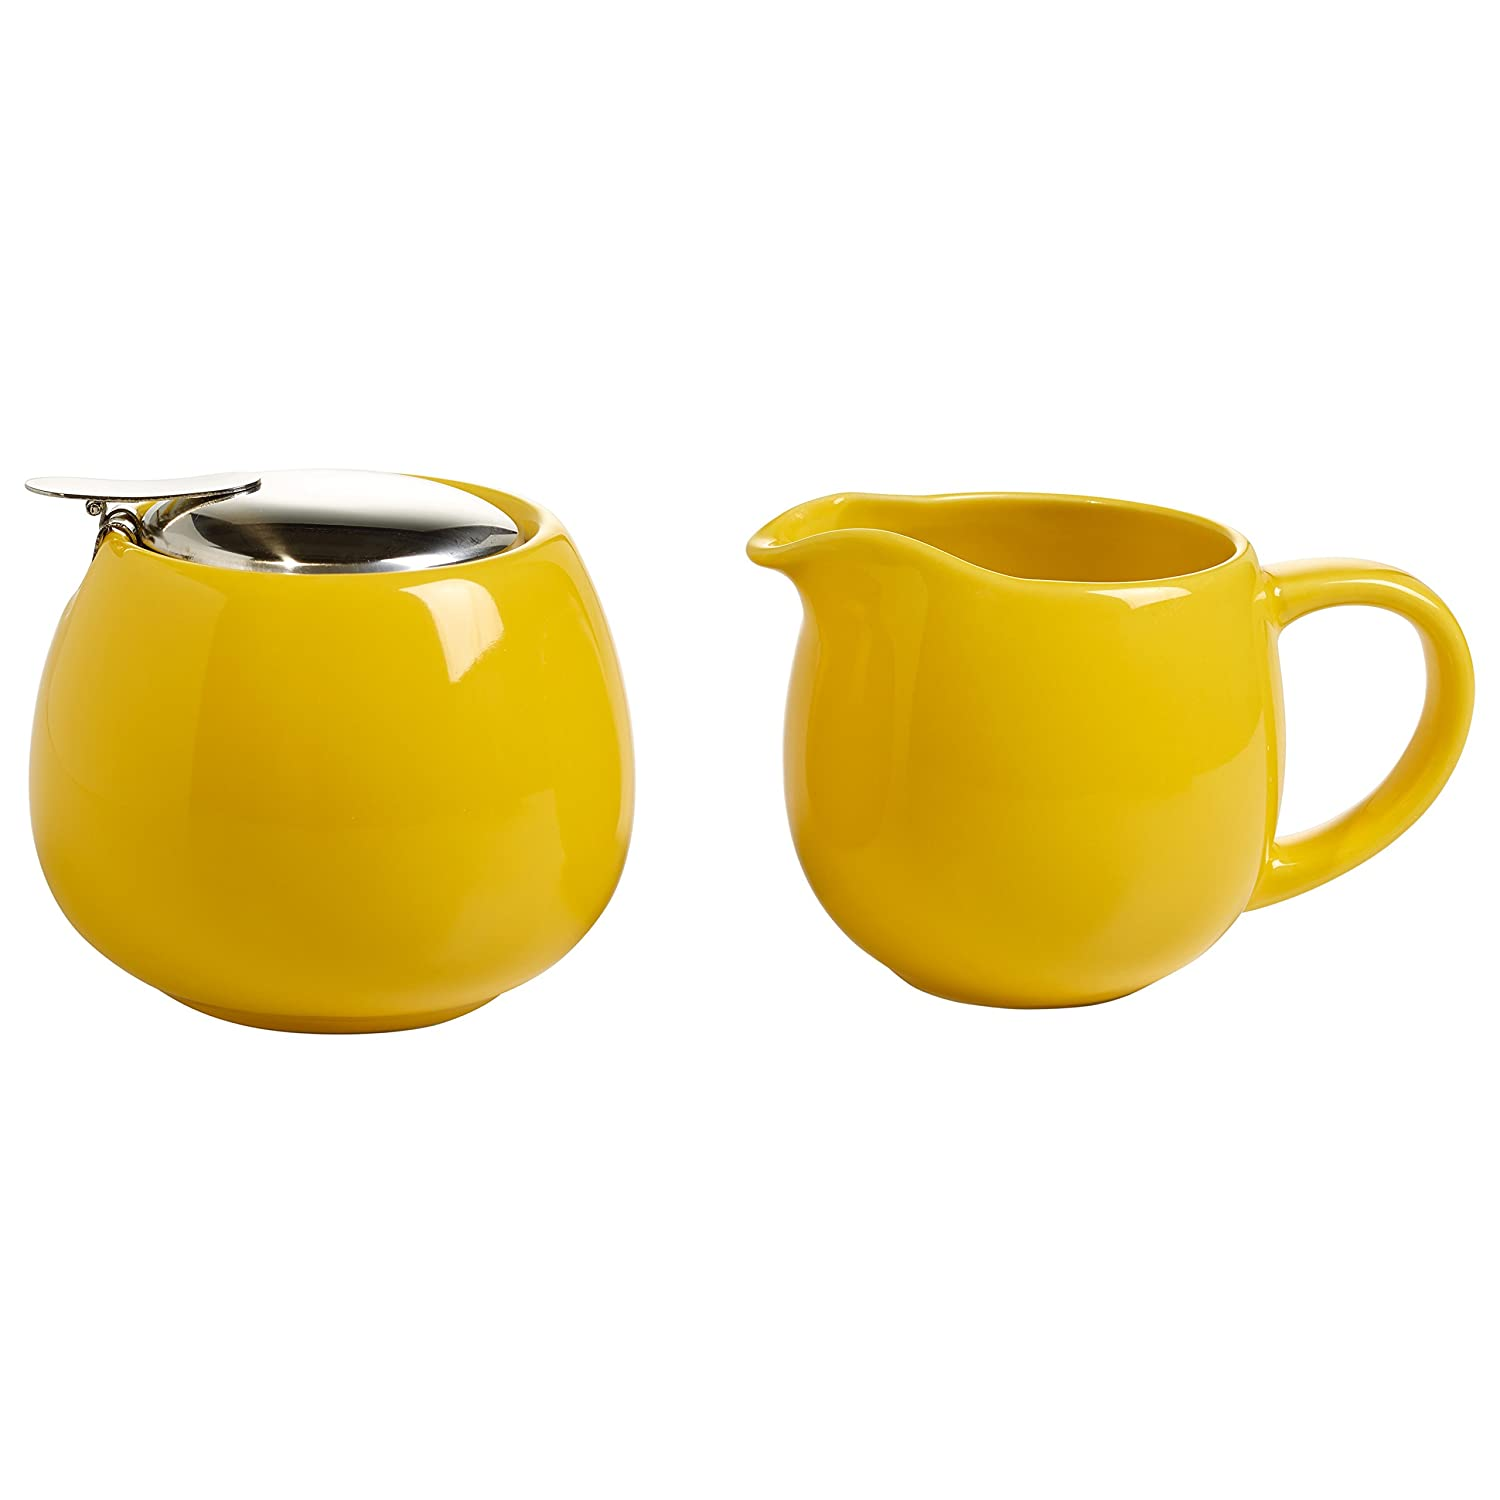 Maxwell Williams IT21000 Milk Sugar Set, Porcelain, Yellow, 11.4 x 35.6 x 55.2 cm 2 Units Maxwell & Williams